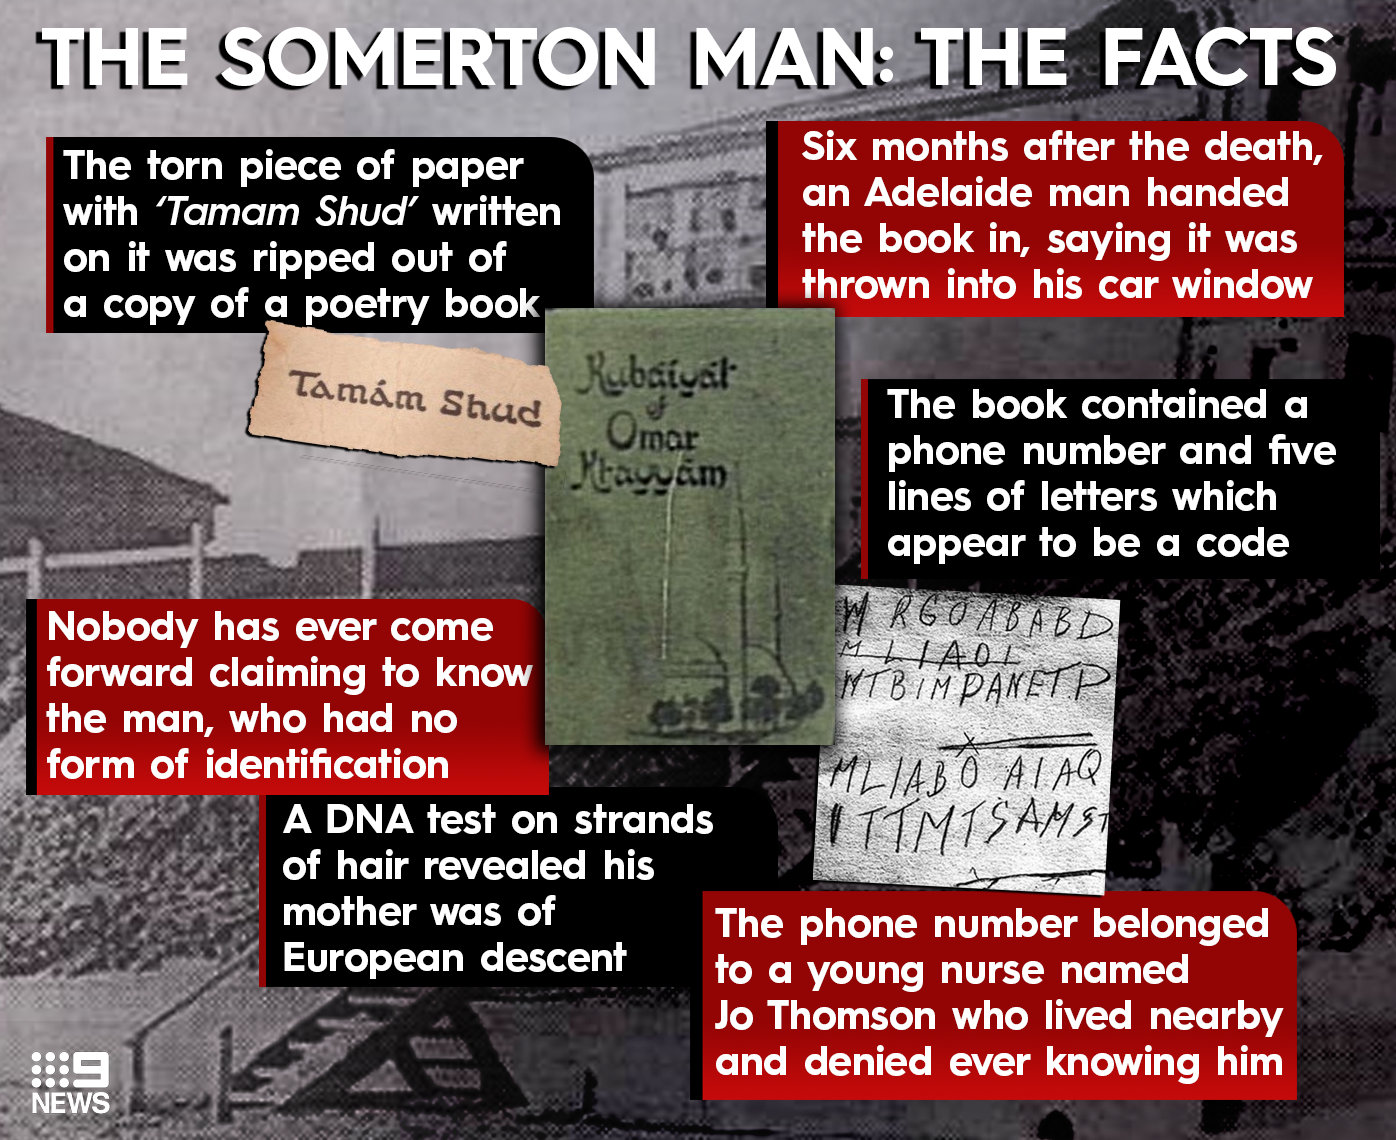 Somerton Man: The Facts (correct spelling)